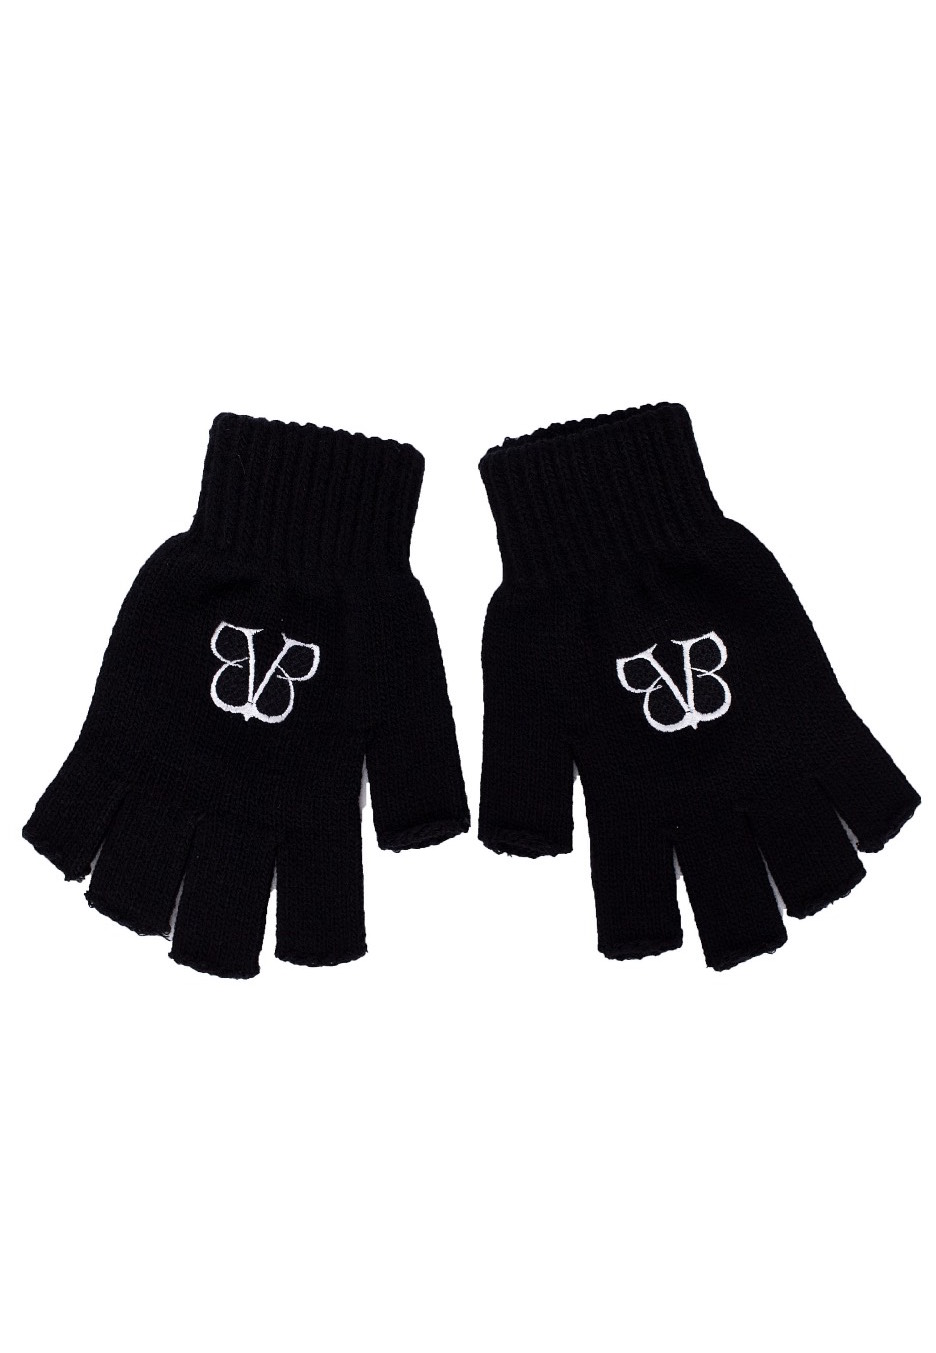 65e6649acddeae Black Veil Brides - Official Merchandise Shop - Impericon.com UK